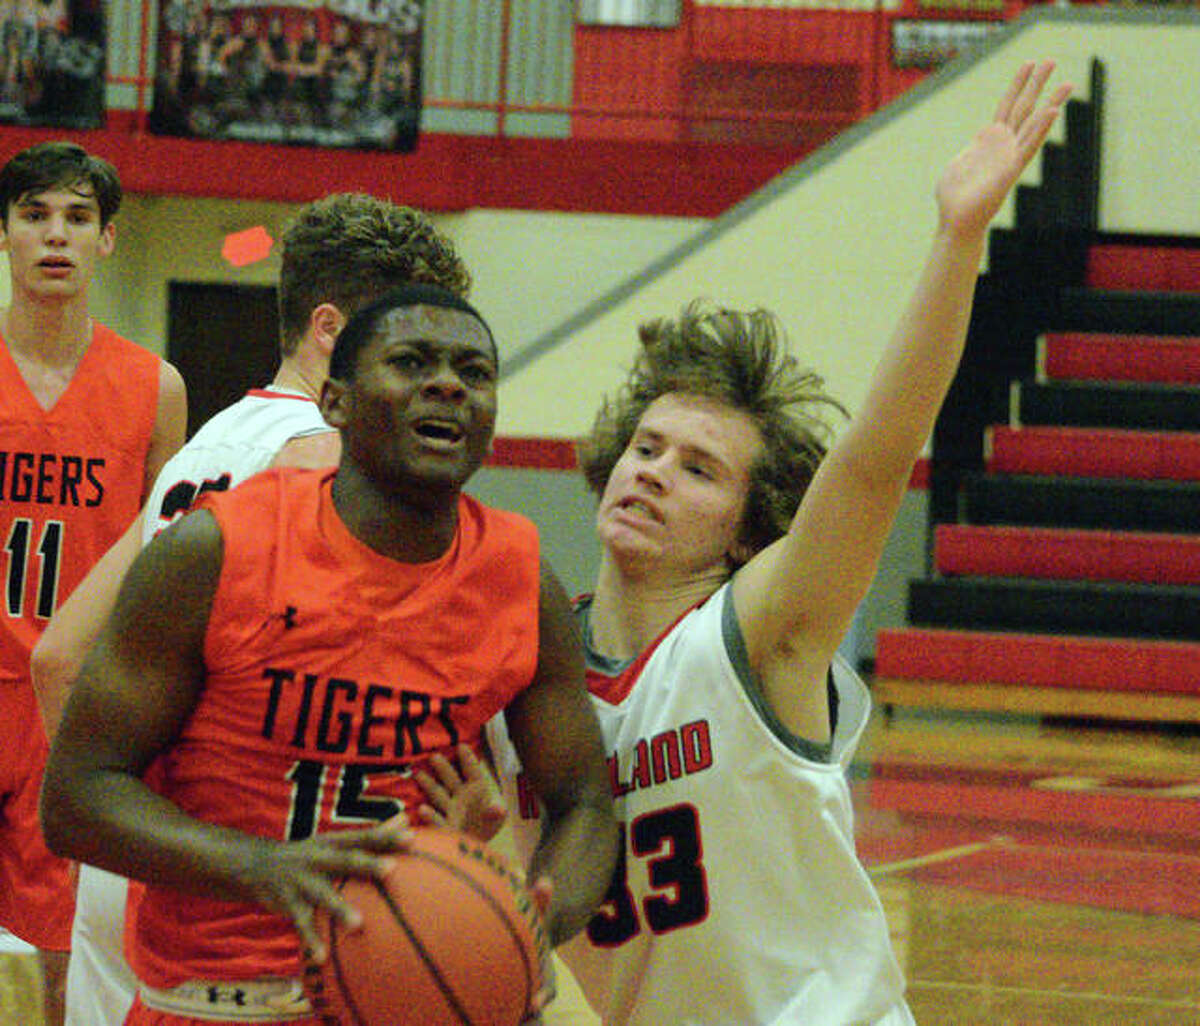 Edwardsville's Willie Thomas, left, drives to the basket during Tuesday's game at Highland.